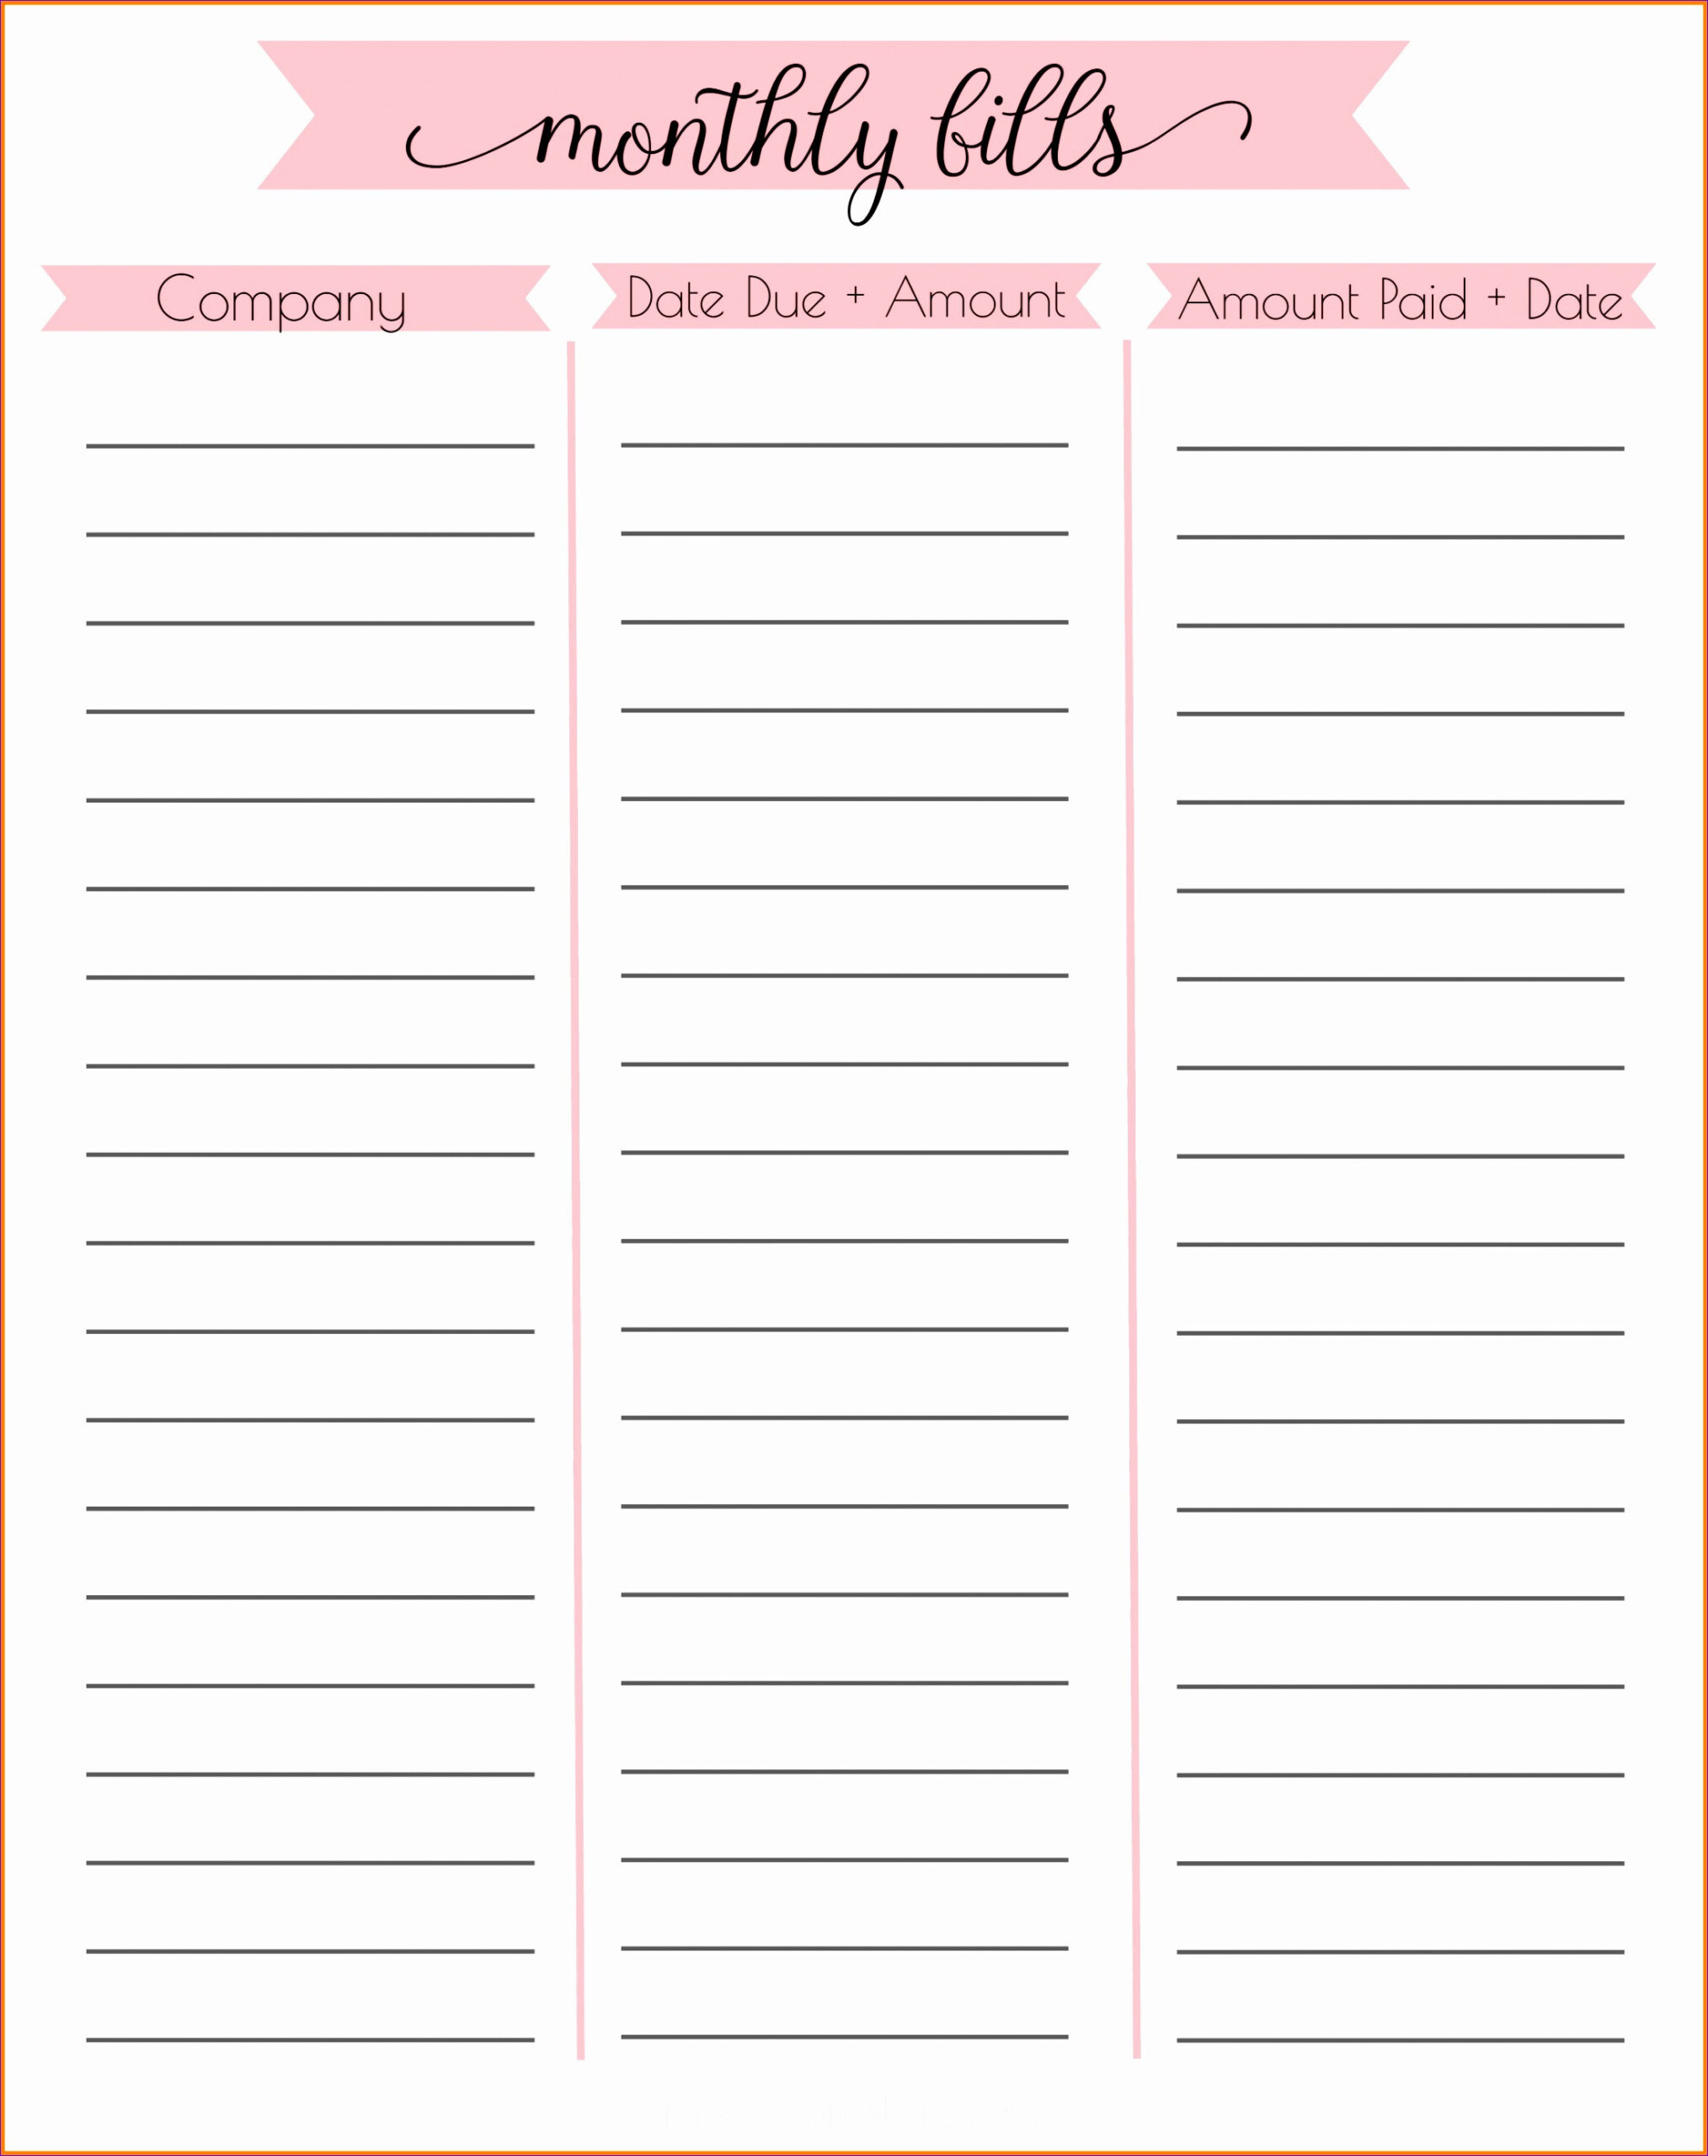 5 Free Personal Budget Template Excel - Excel Templates  Monthly Bills Task Sheet